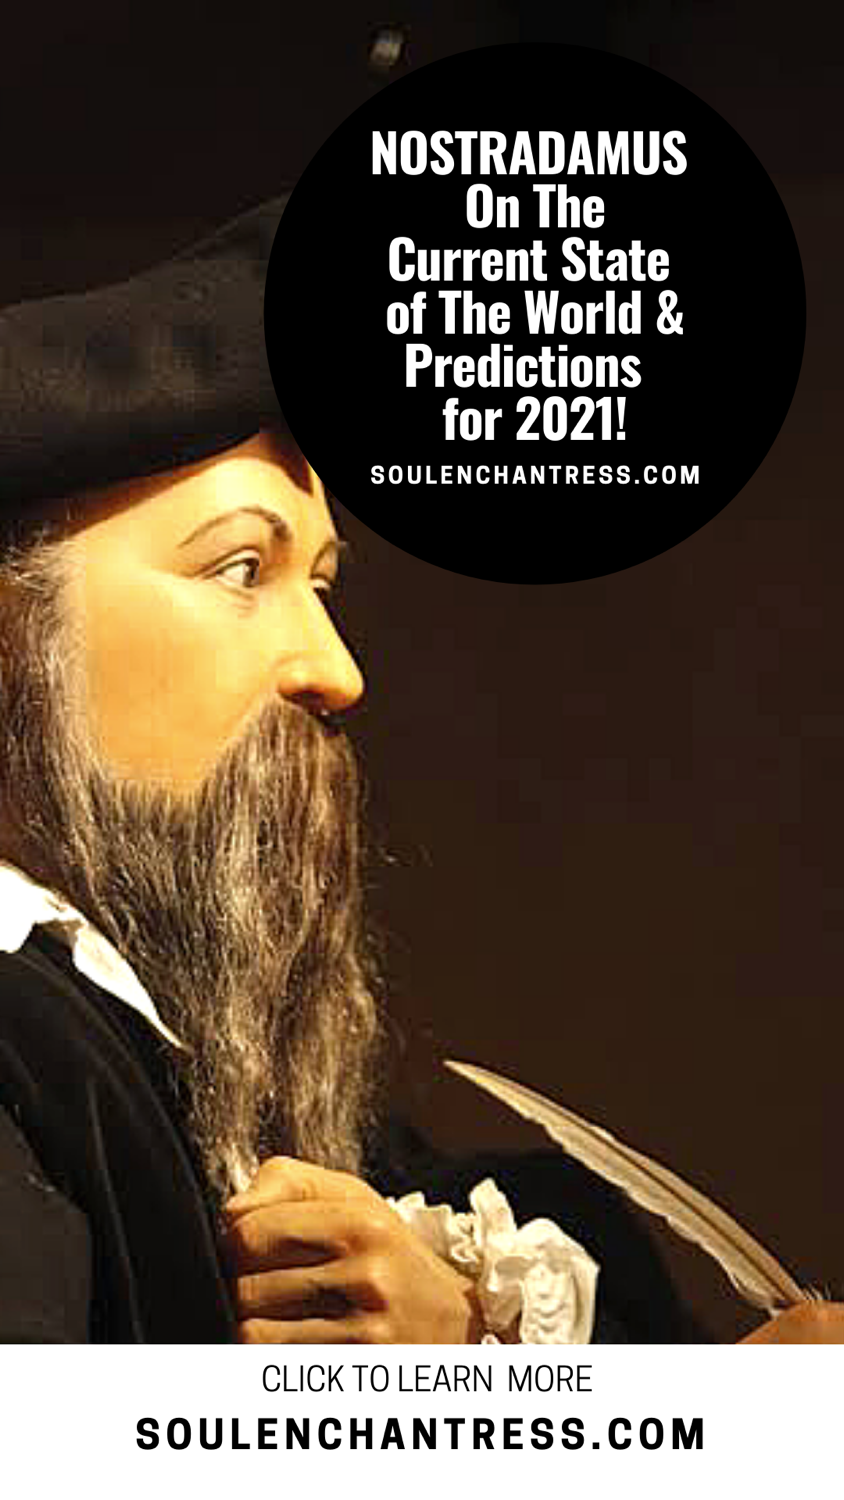 channeling Nostradamus, soul enchantress, 2021 predictions